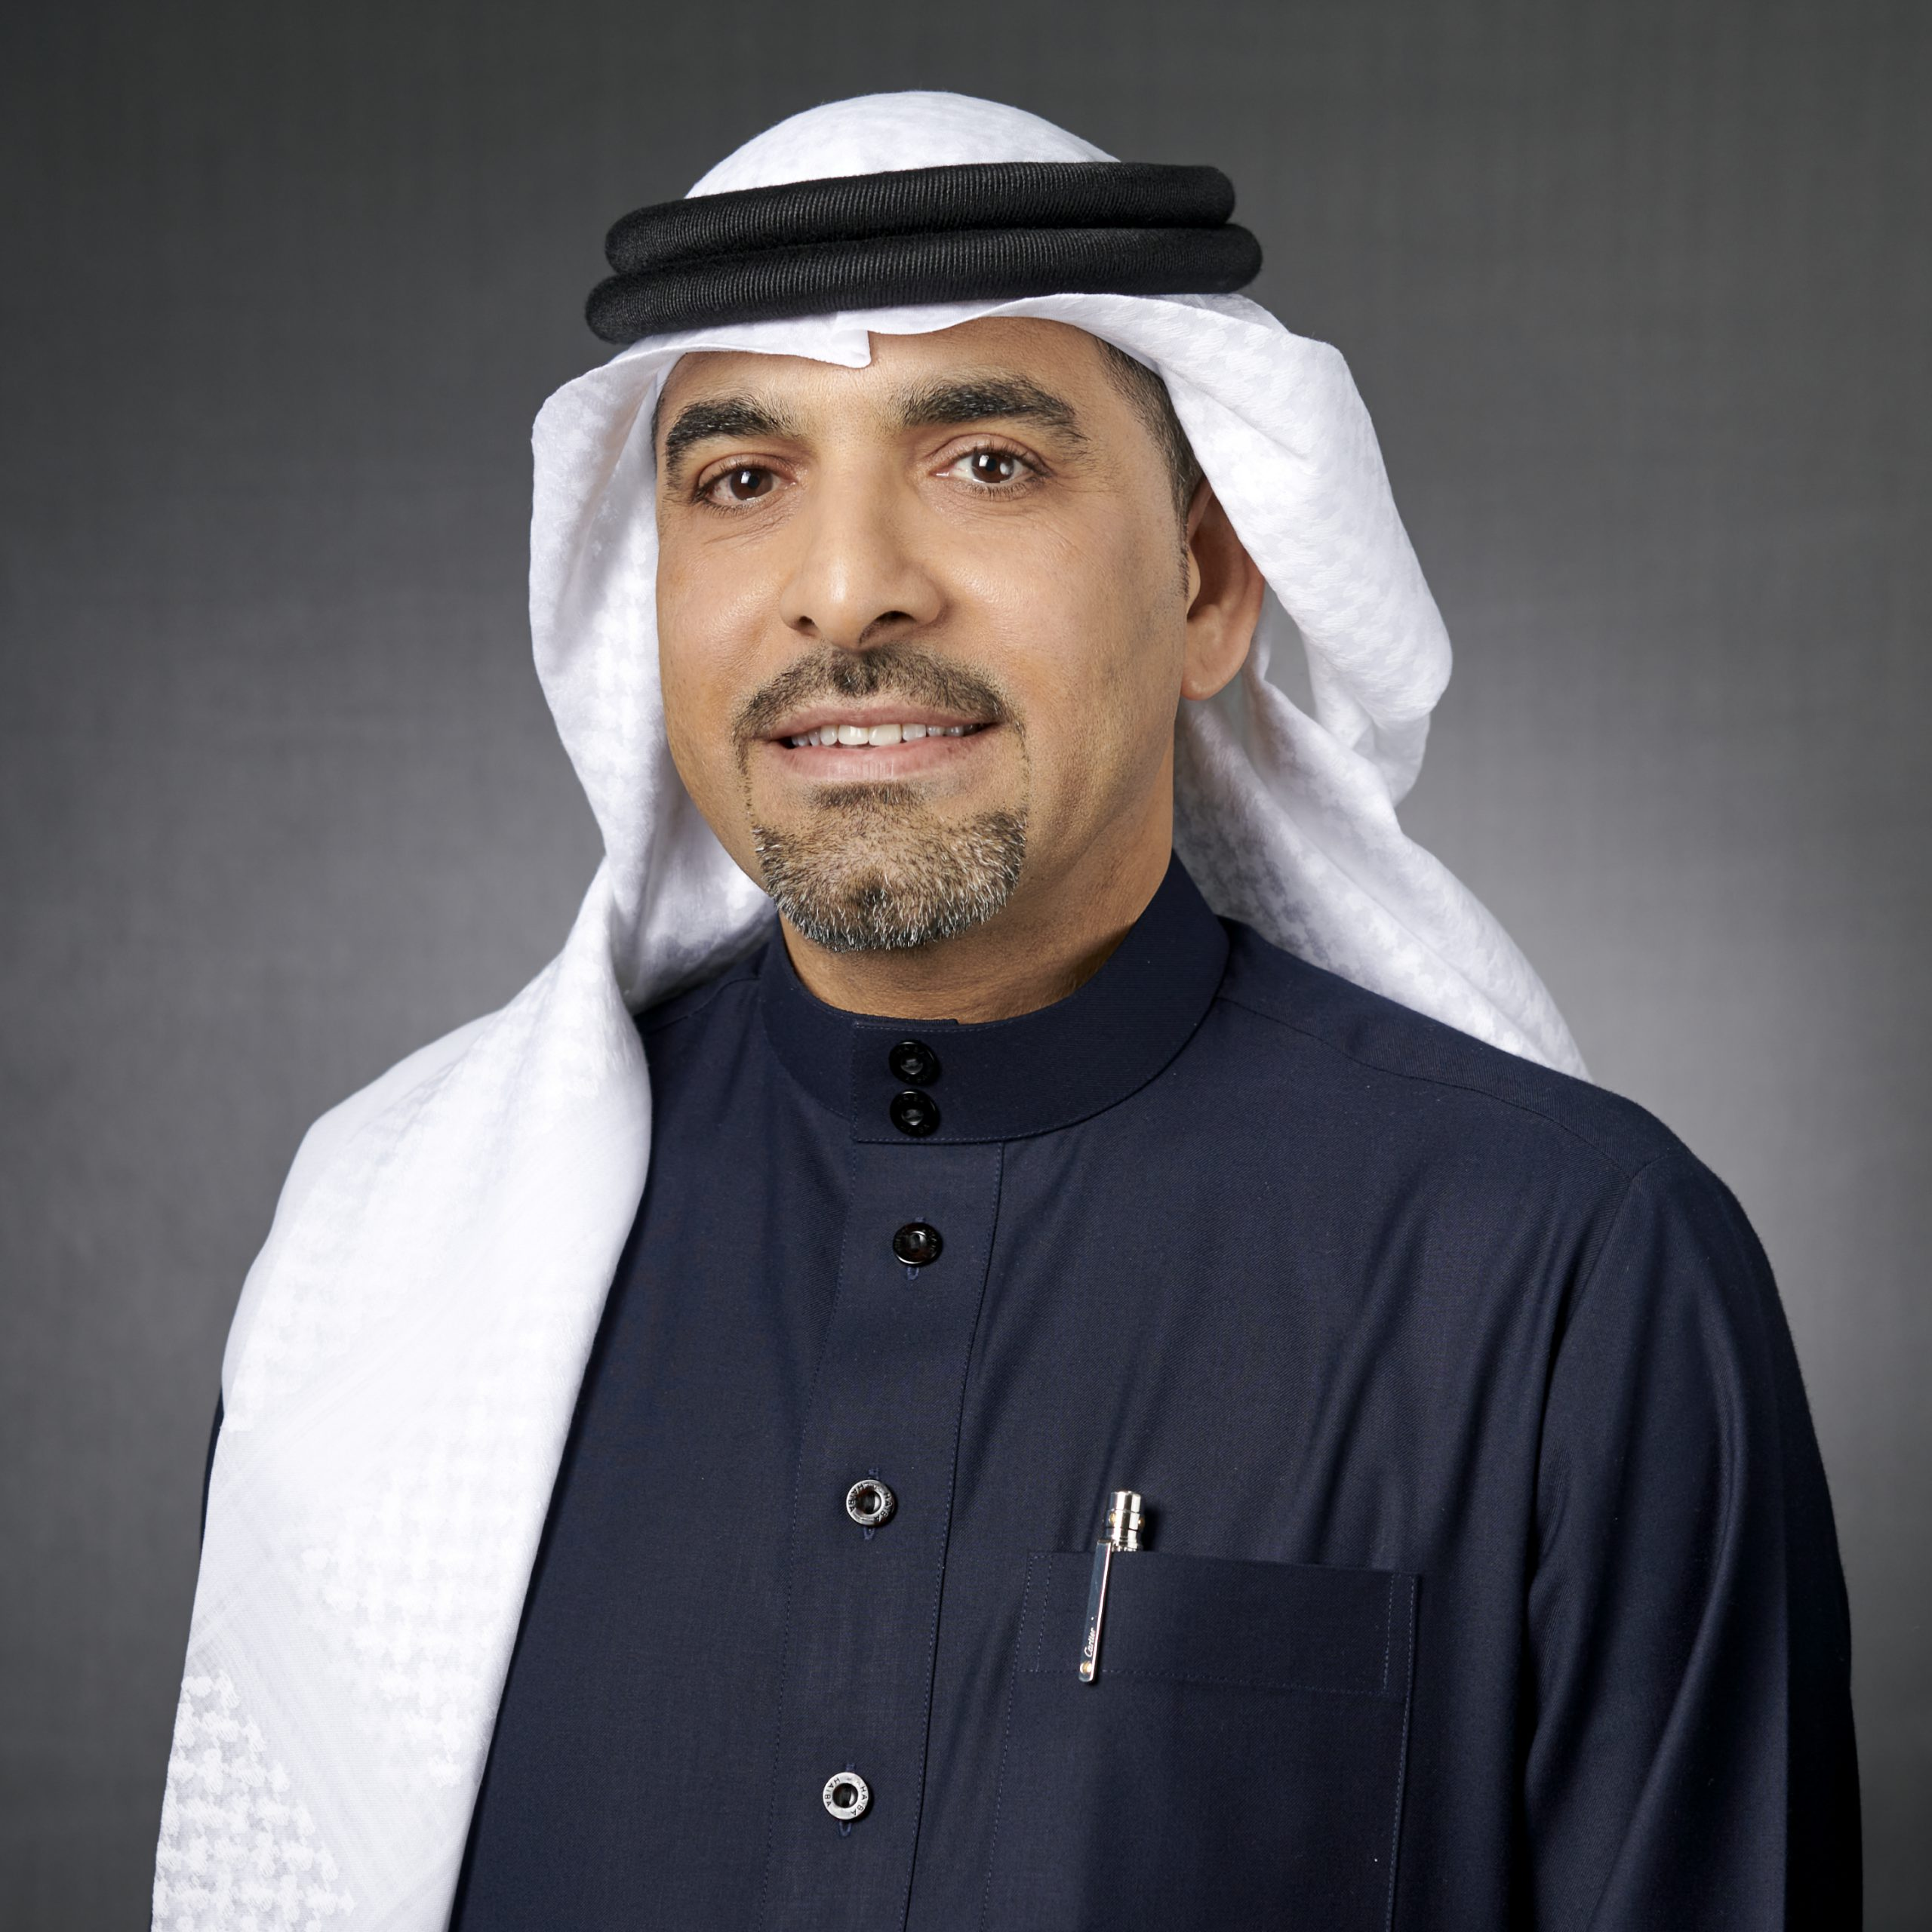 Solidarity Bahrain B.S.C. announces net profits of BD 3.08 million for the year 2020, Representing 6% increase